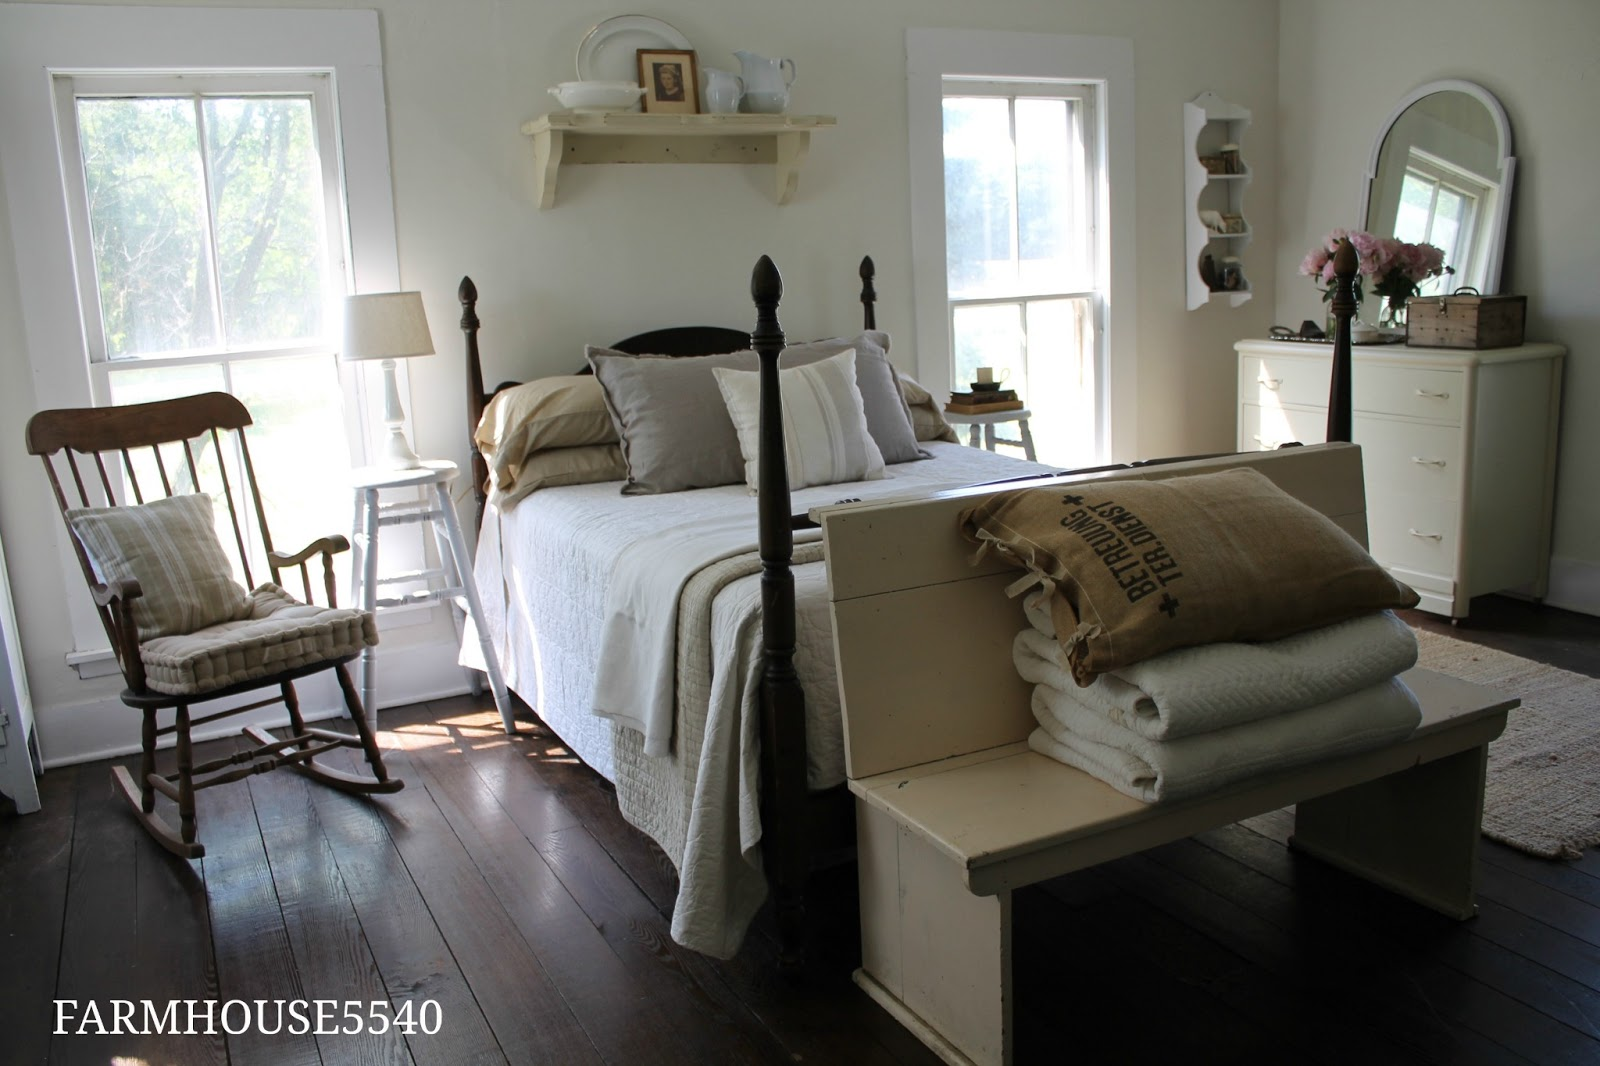 Farmhouse 5540 guest bedroom reveal for Bedroom bed designs images